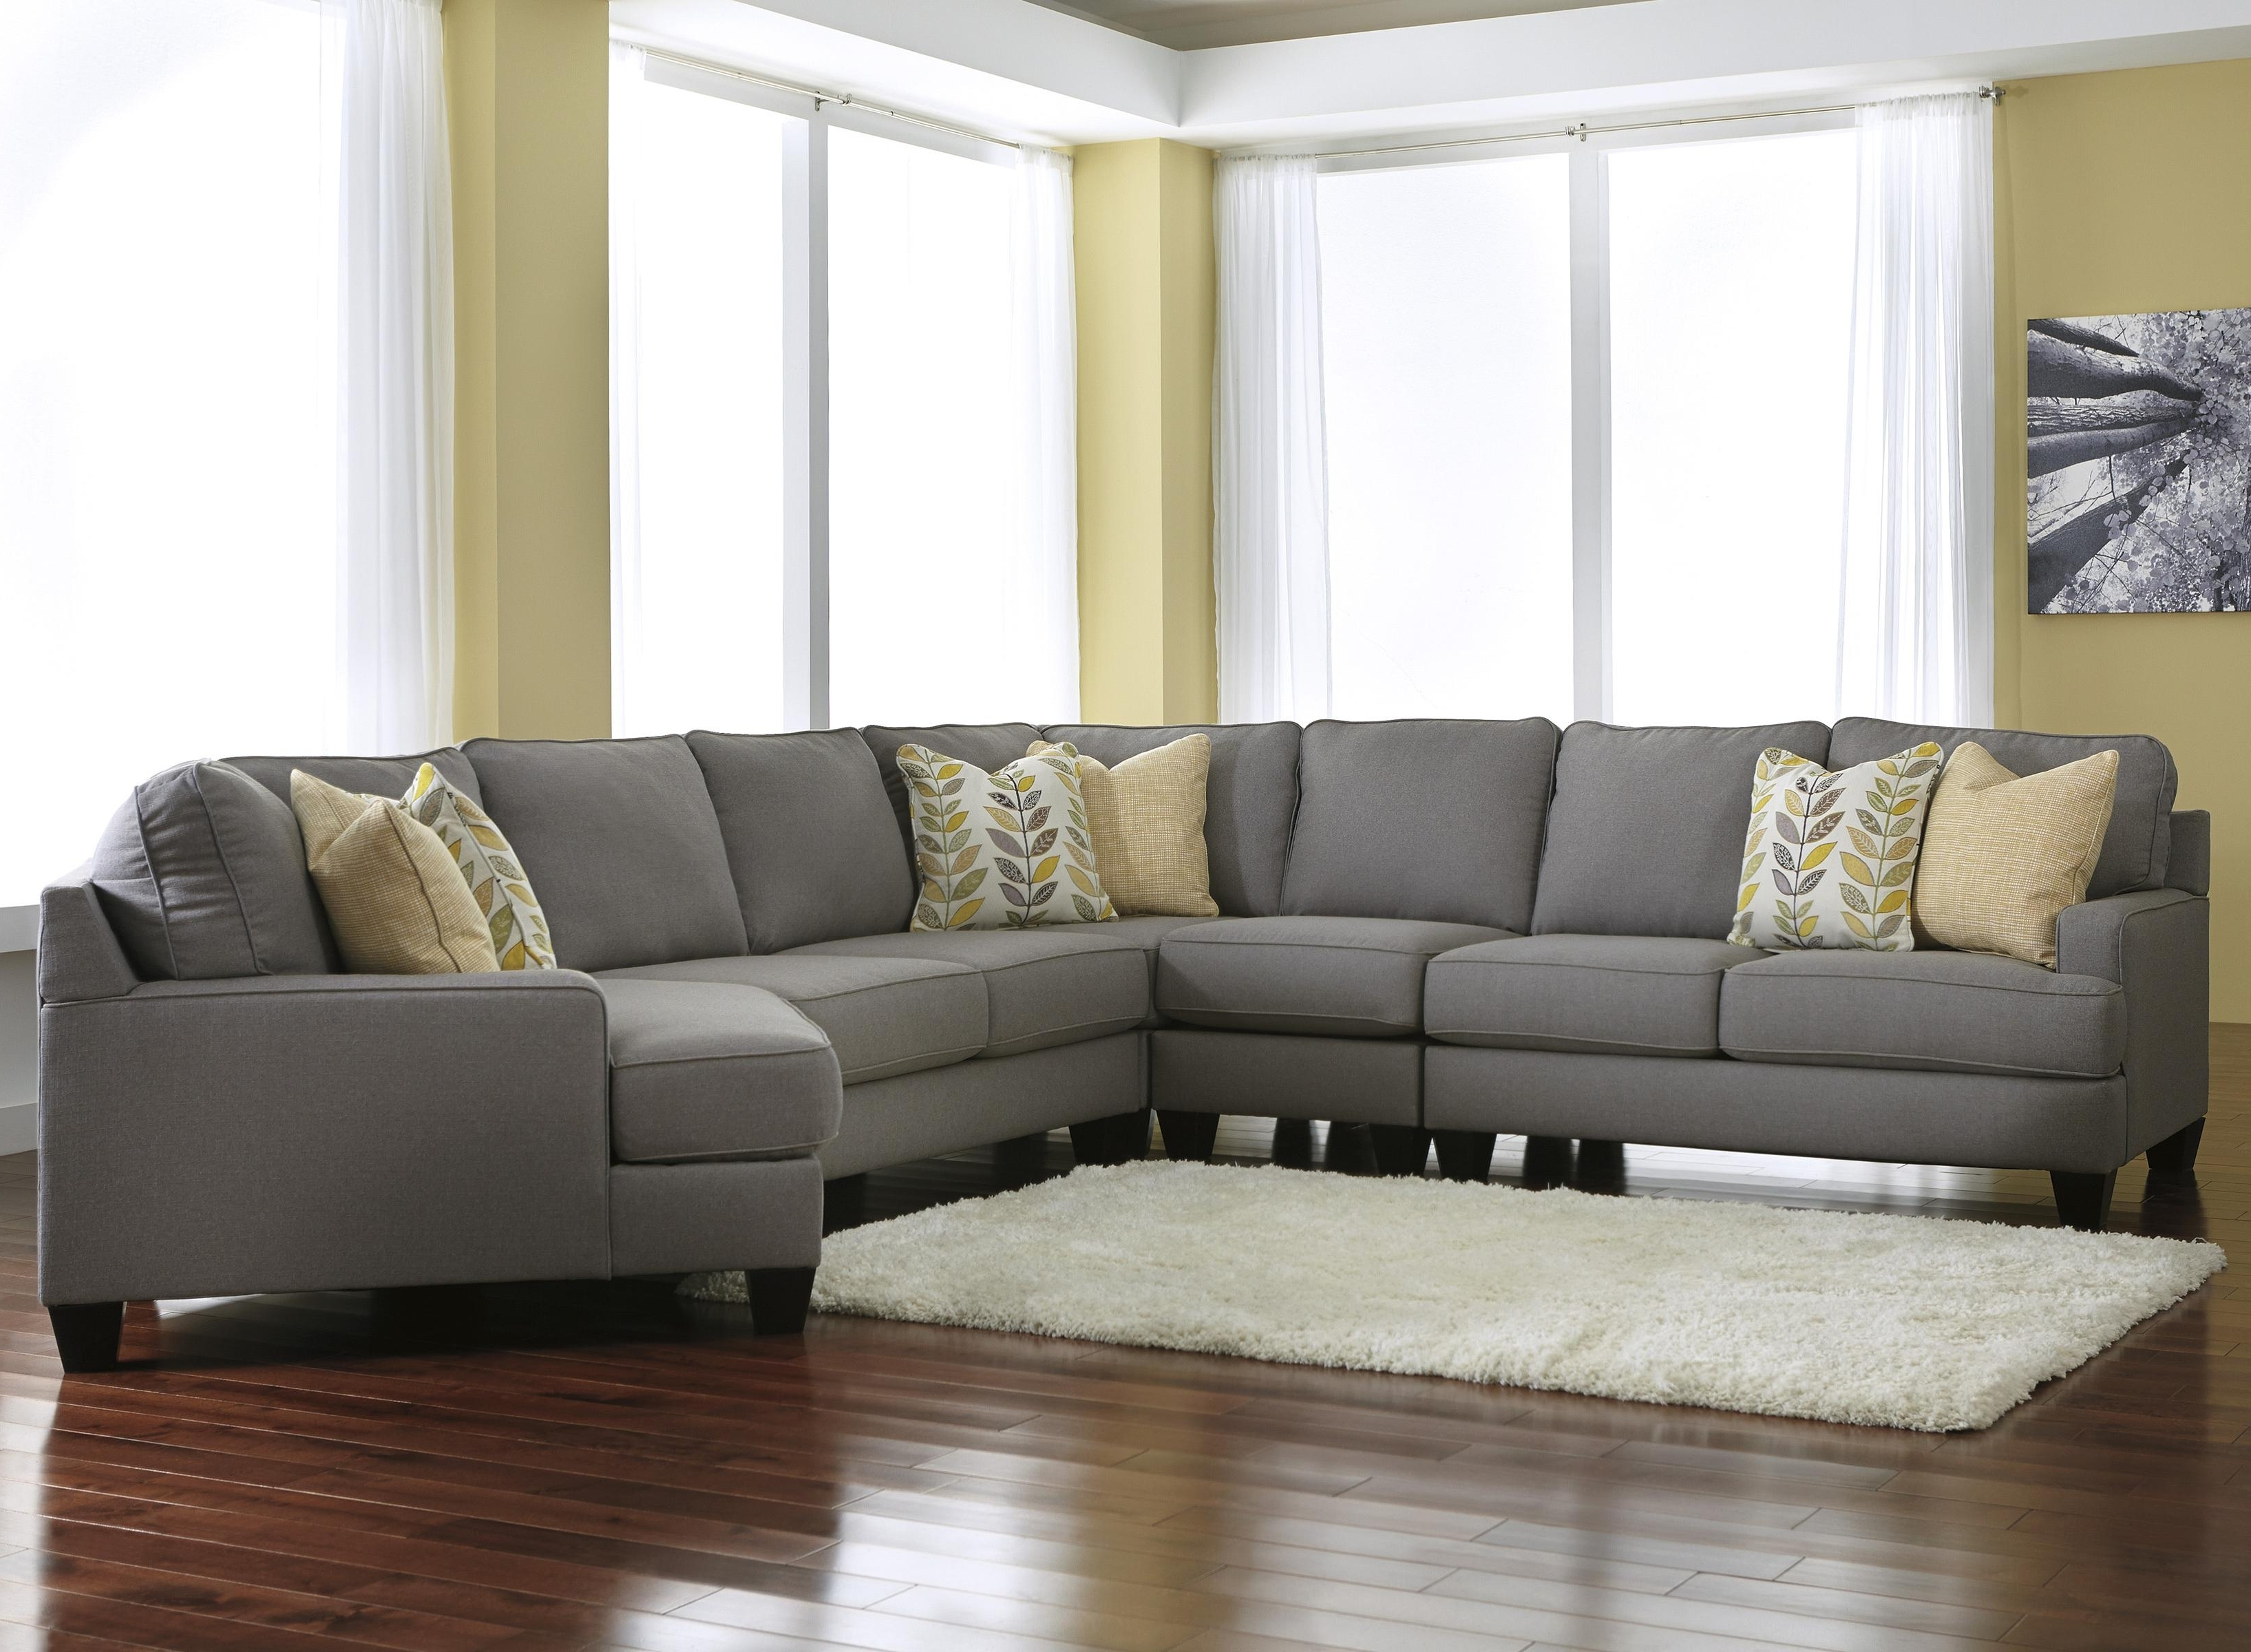 Signature Designashley Chamberly – Alloy Modern 5 Piece Inside Most Recent Sectional Sofas With Cuddler Chaise (View 12 of 20)